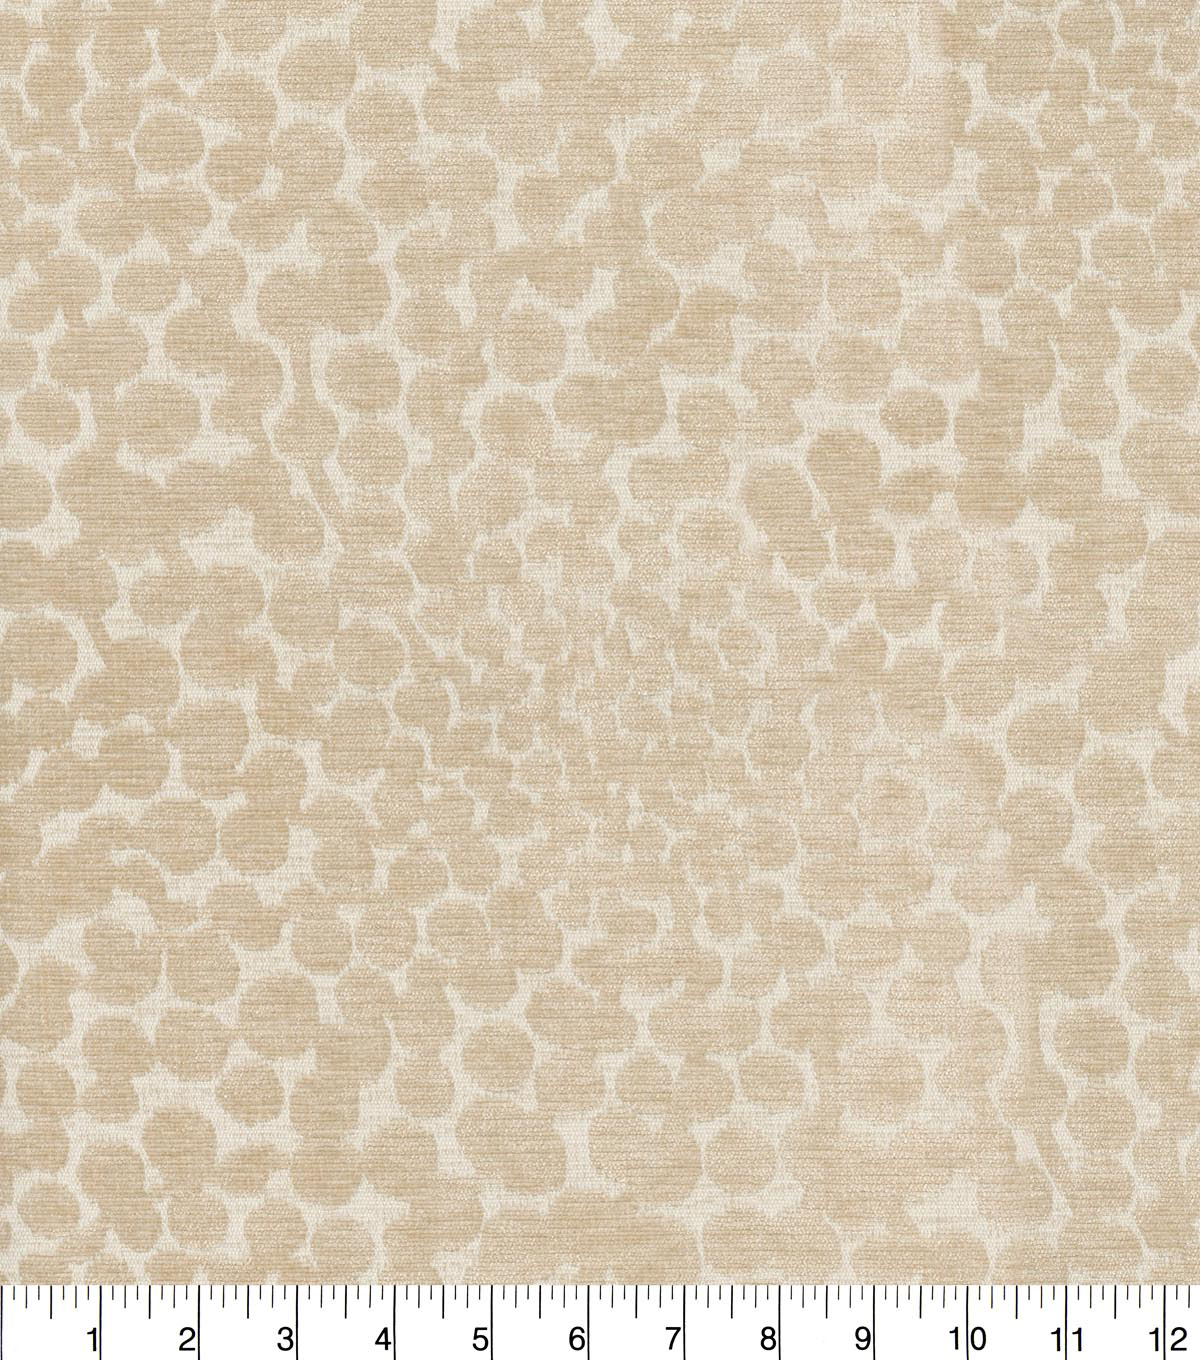 Home Decor 8\u0022x8\u0022 Fabric Swatch-Waverly Shadow Bloom Dune